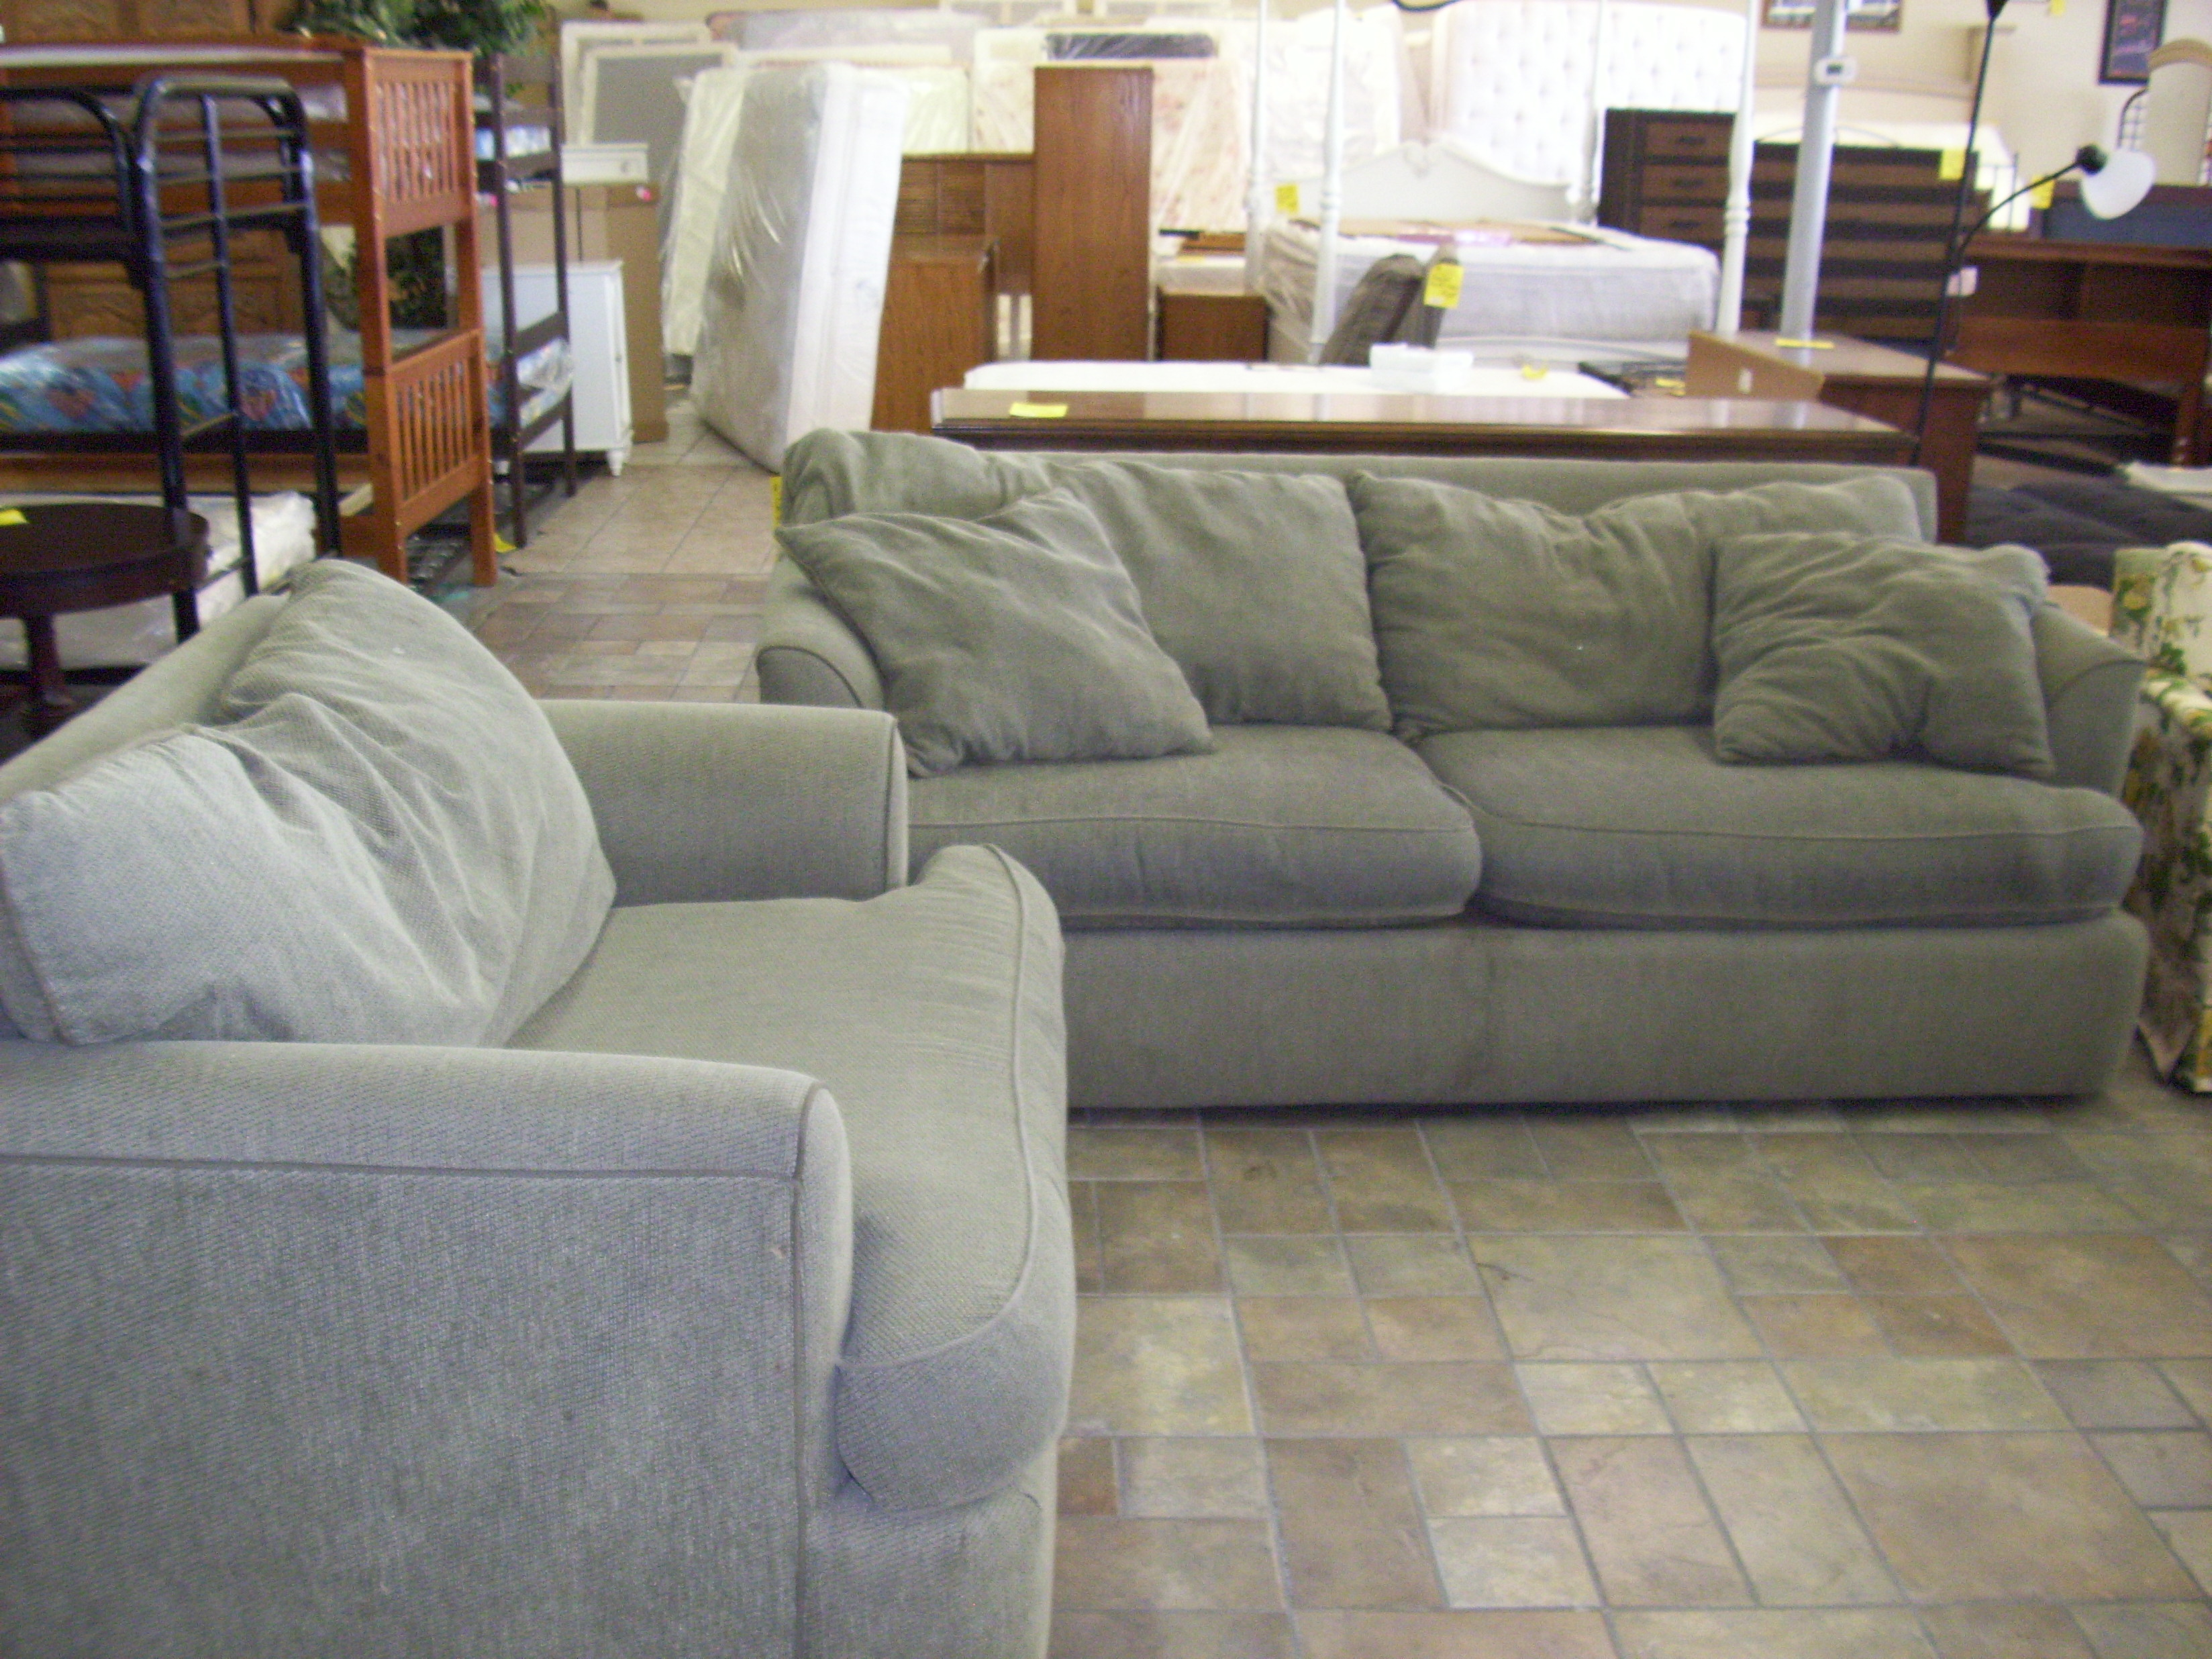 stunning sectional sofas on sale concept-Elegant Sectional sofas On Sale Ideas